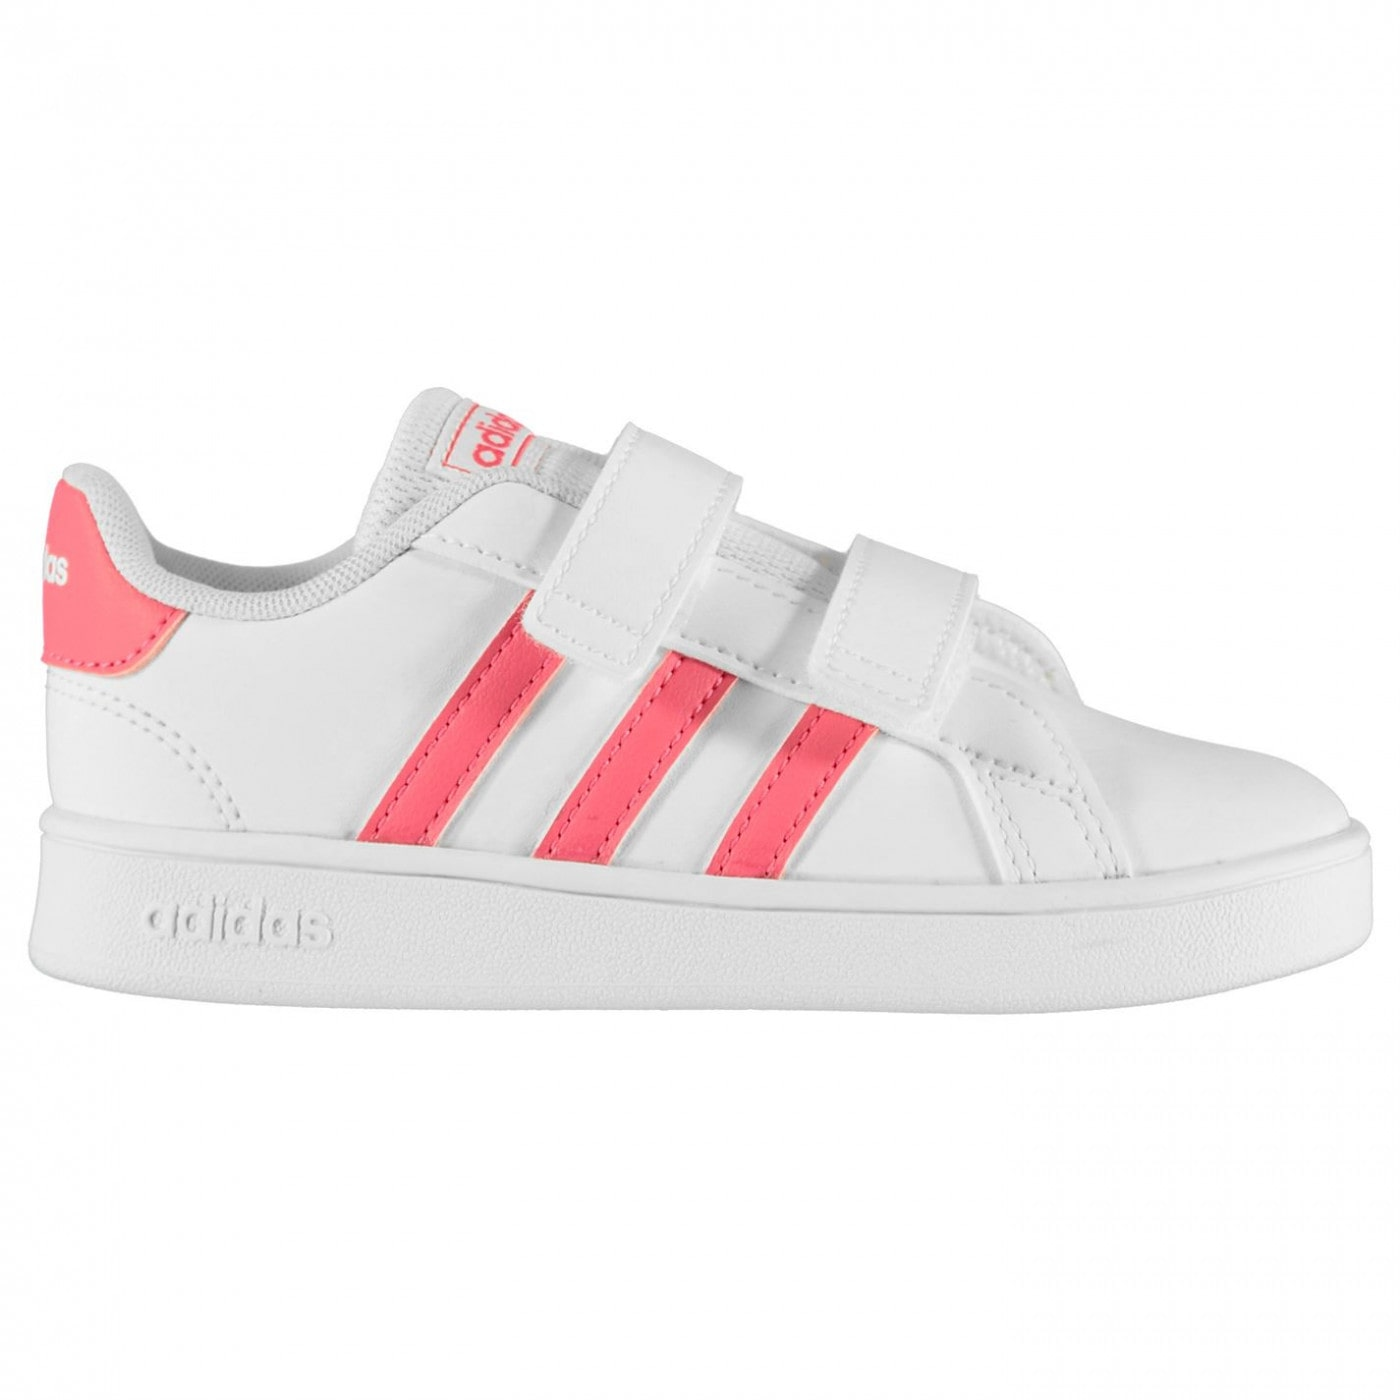 Adidas Grand Court Infant Girls Trainers